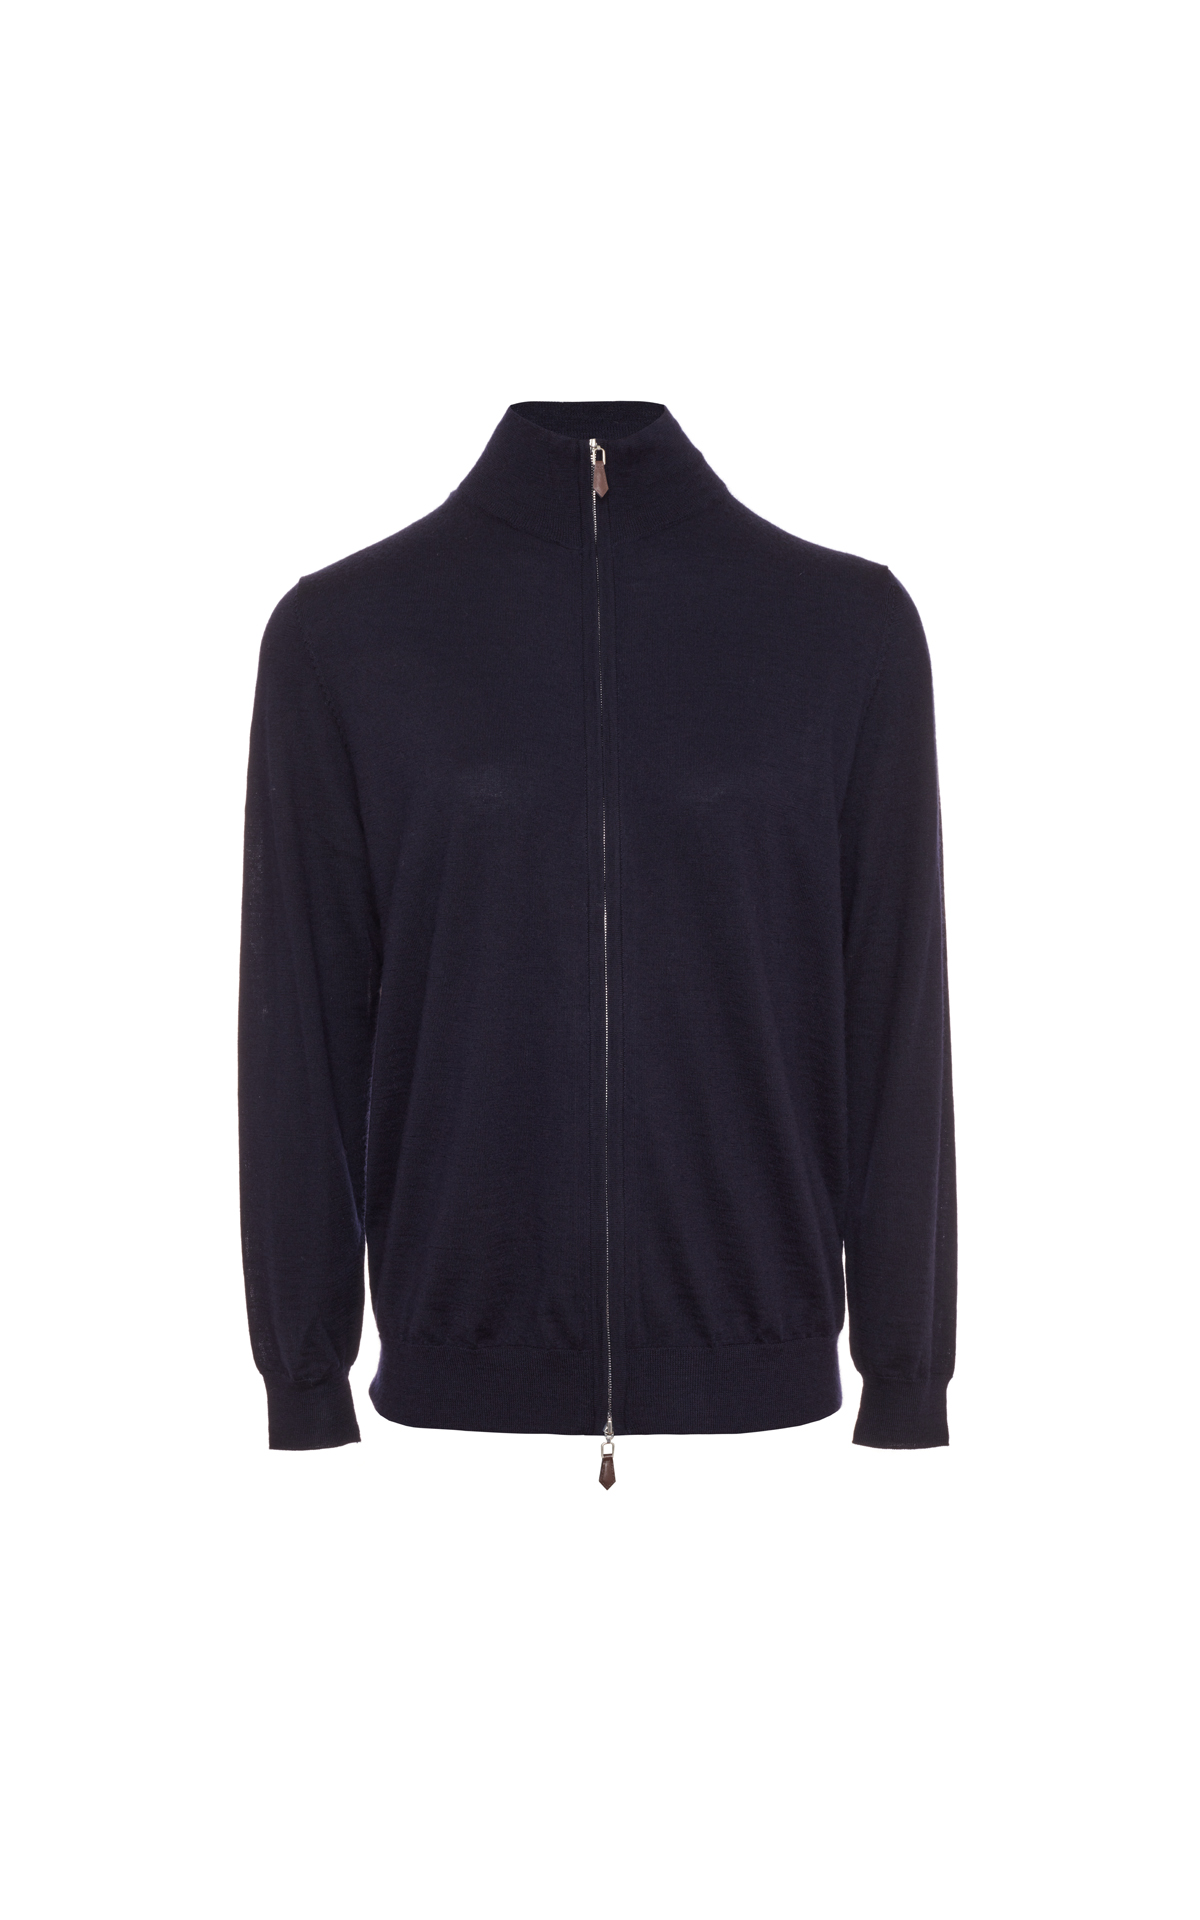 N.Peal  Hyde zip sweater from Bicester Village